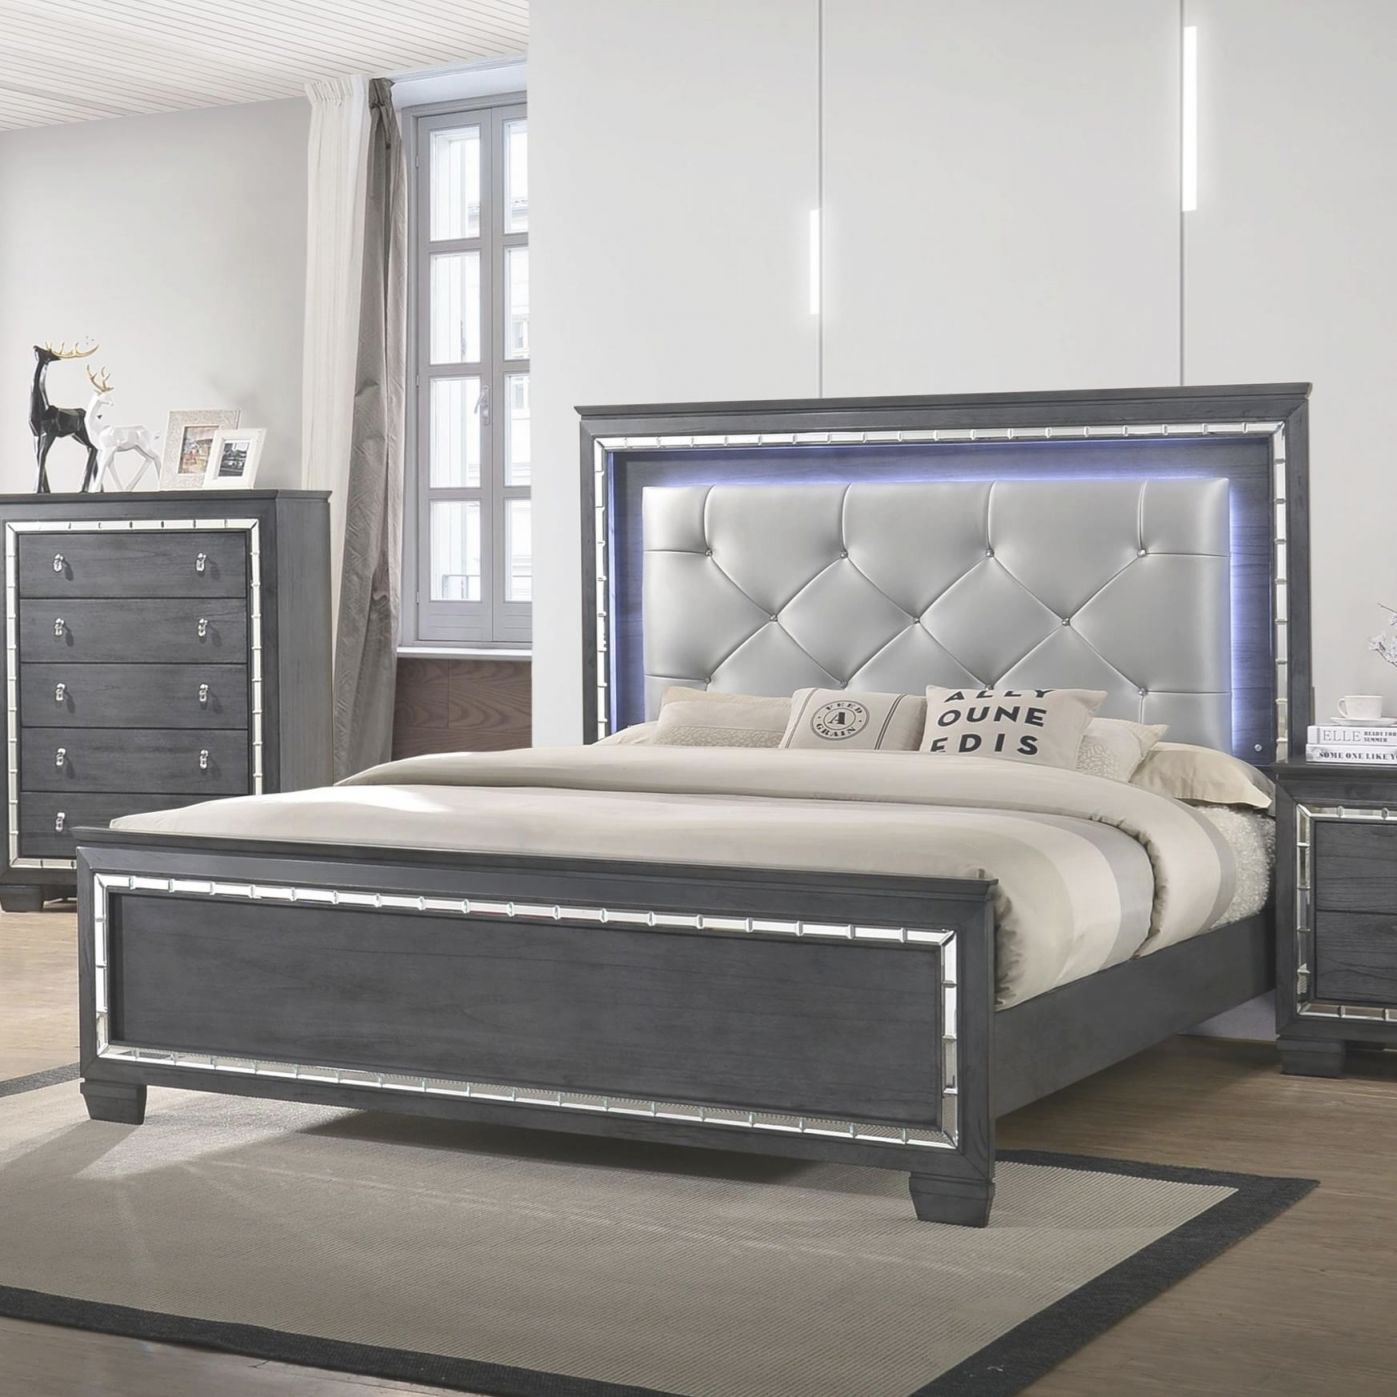 Perina King Bed With Upholstered Led Headboardcrown Mark At Royal Furniture with regard to King Bed Frame With Headboard